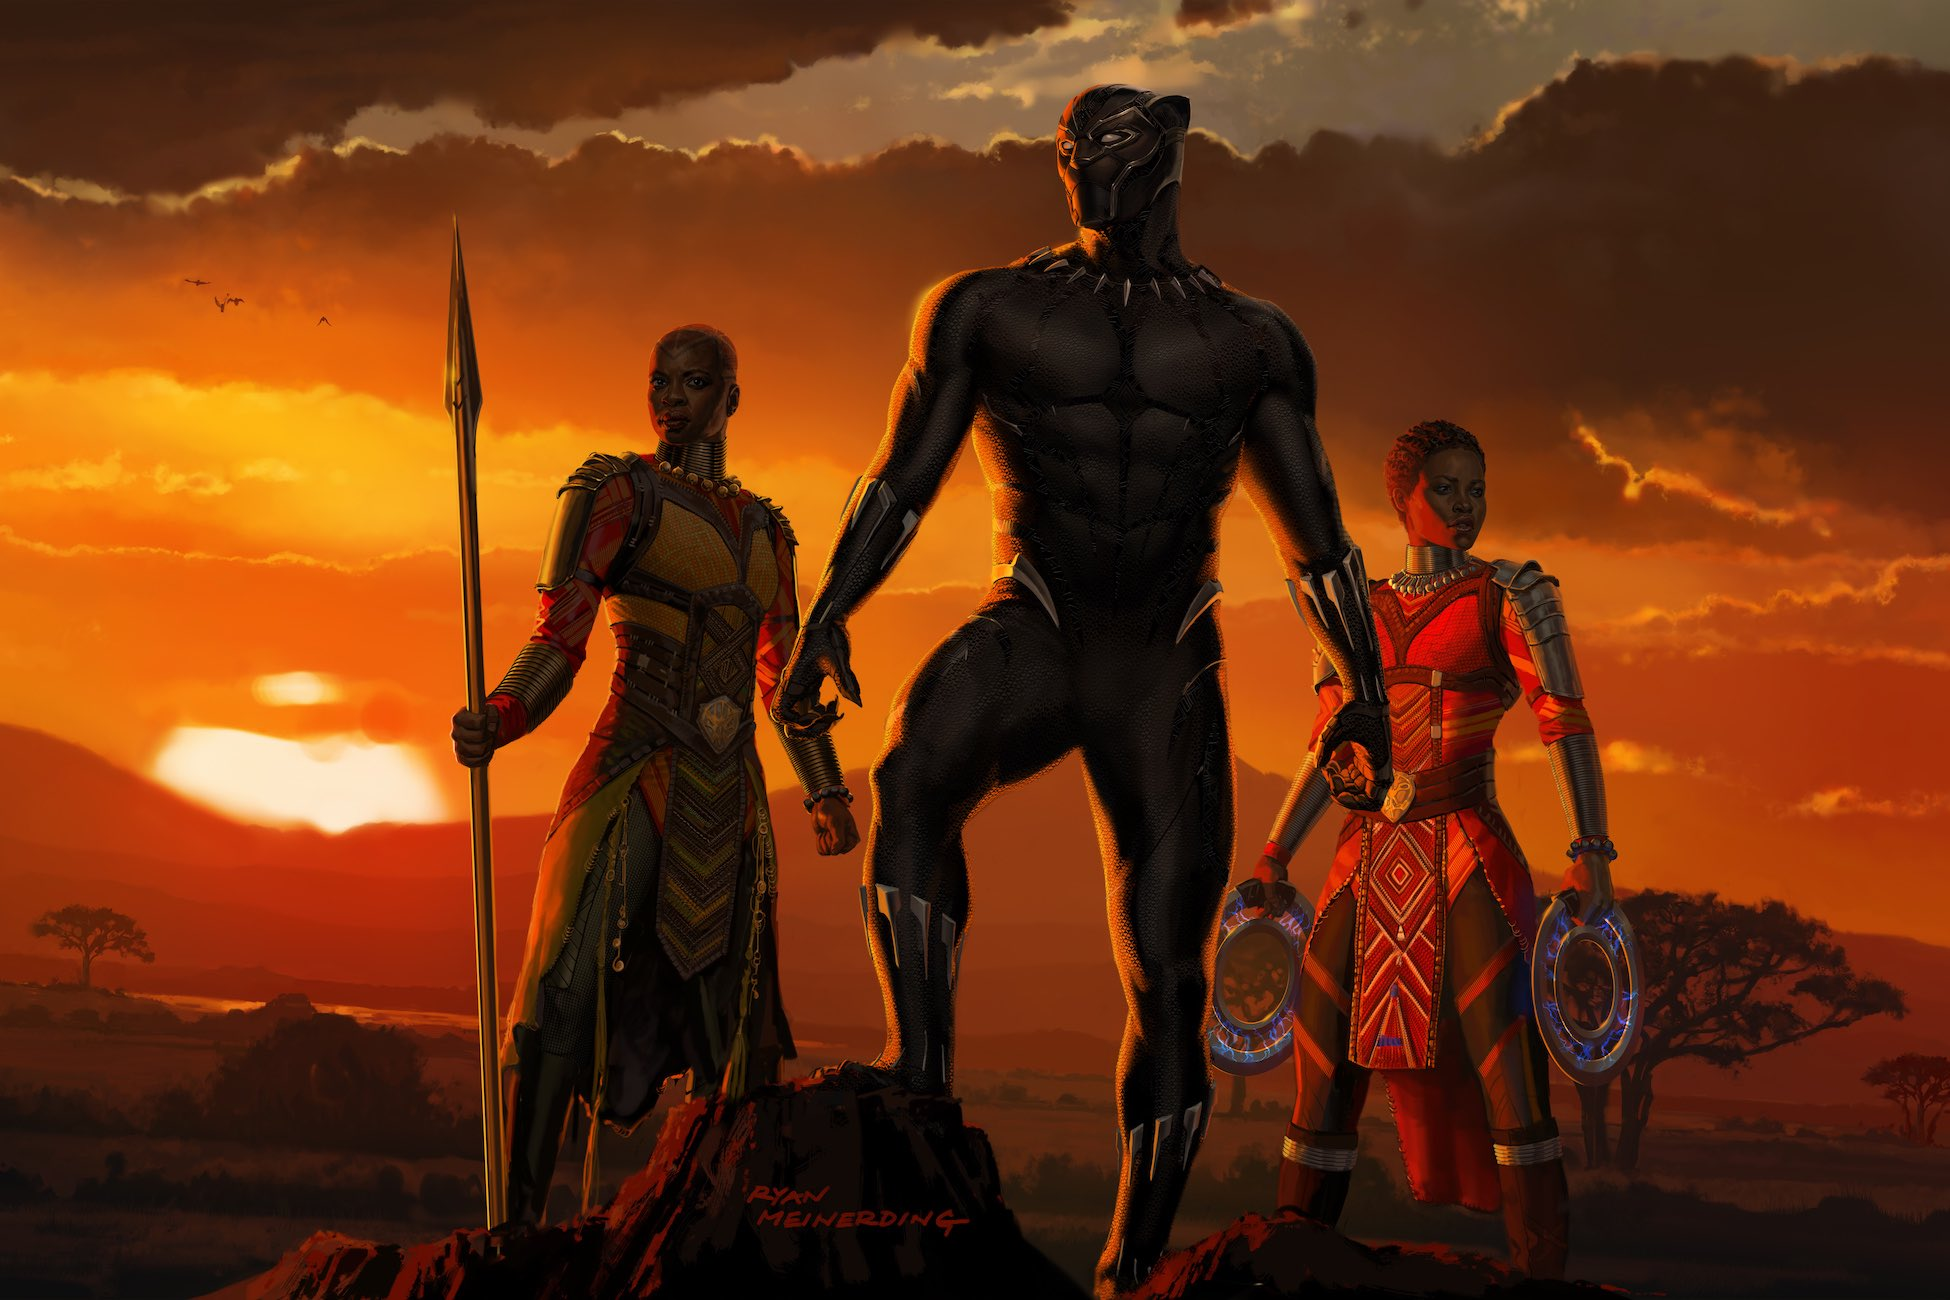 Black Panther 2018 Movie Still Full Hd Wallpaper: Black Panther Movie Artwork, HD Movies, 4k Wallpapers